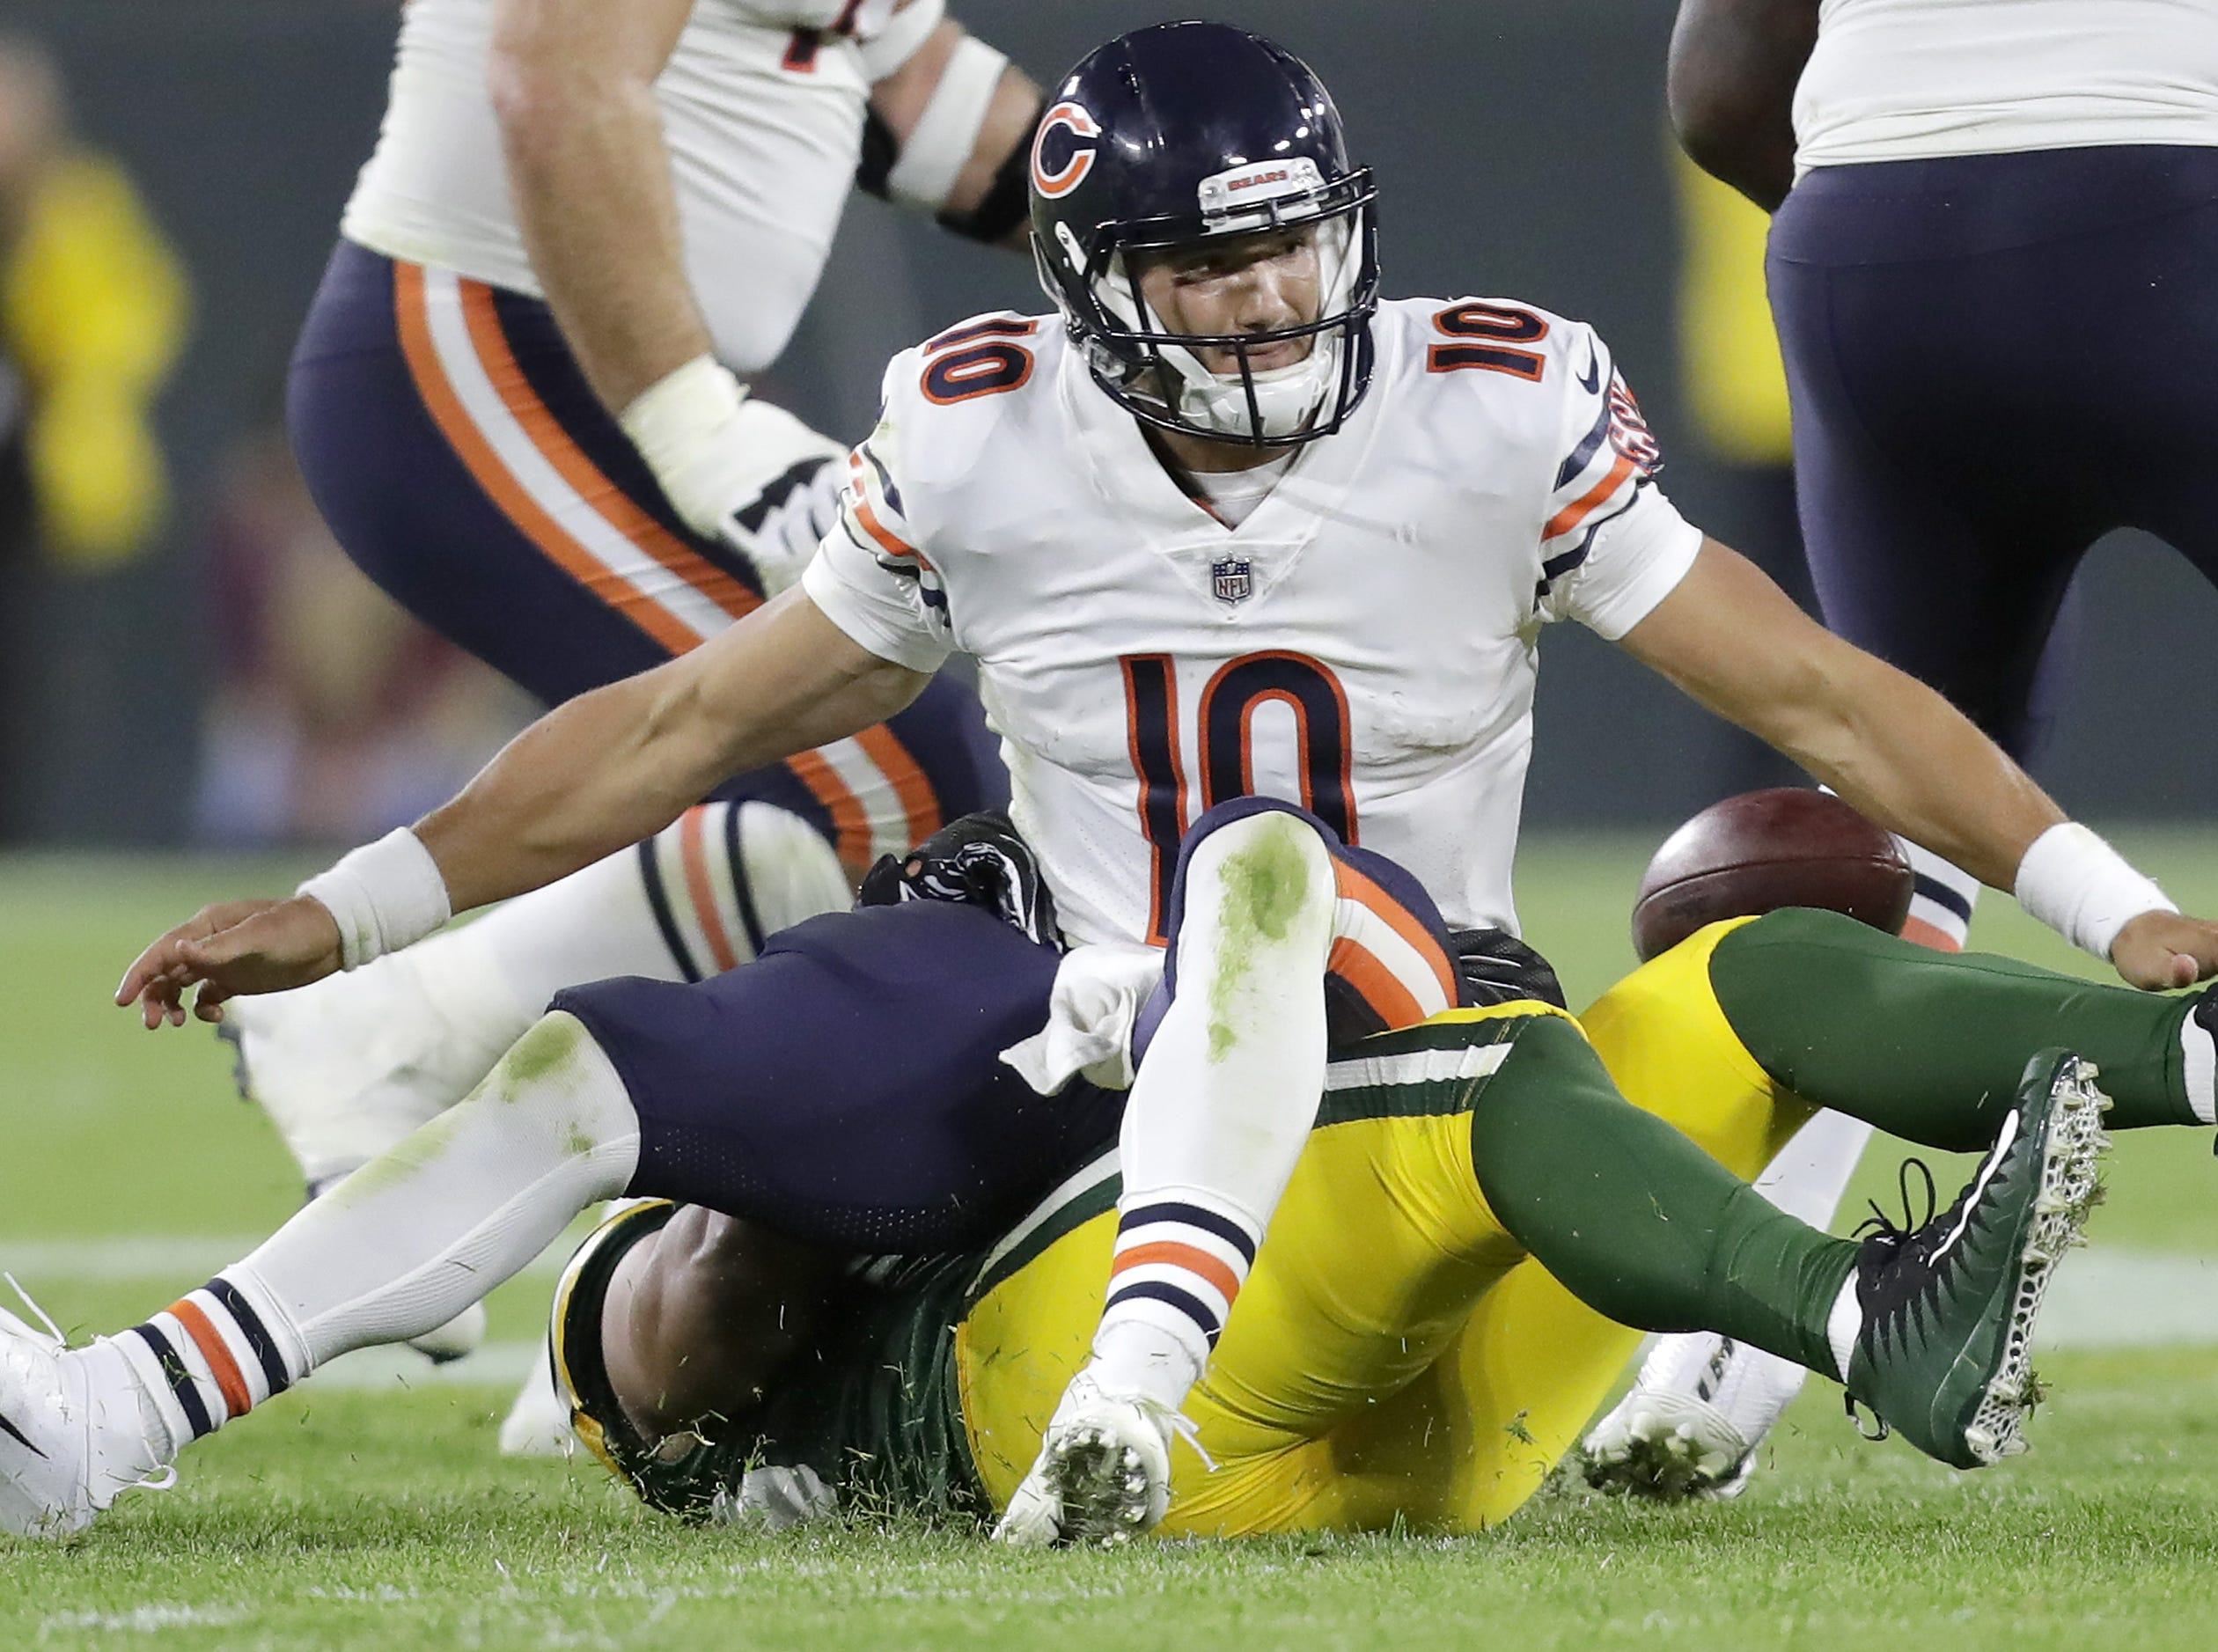 Green Bay Packers' Nick Perry ends a late fourth quarter drive by sacking Chicago Bears' Mitchell Trubisky in the season opener on Sunday, September 9, 2018, at Lambeau Field in Green Bay, Wis. The Packers defeated the Bears 24 to 23.